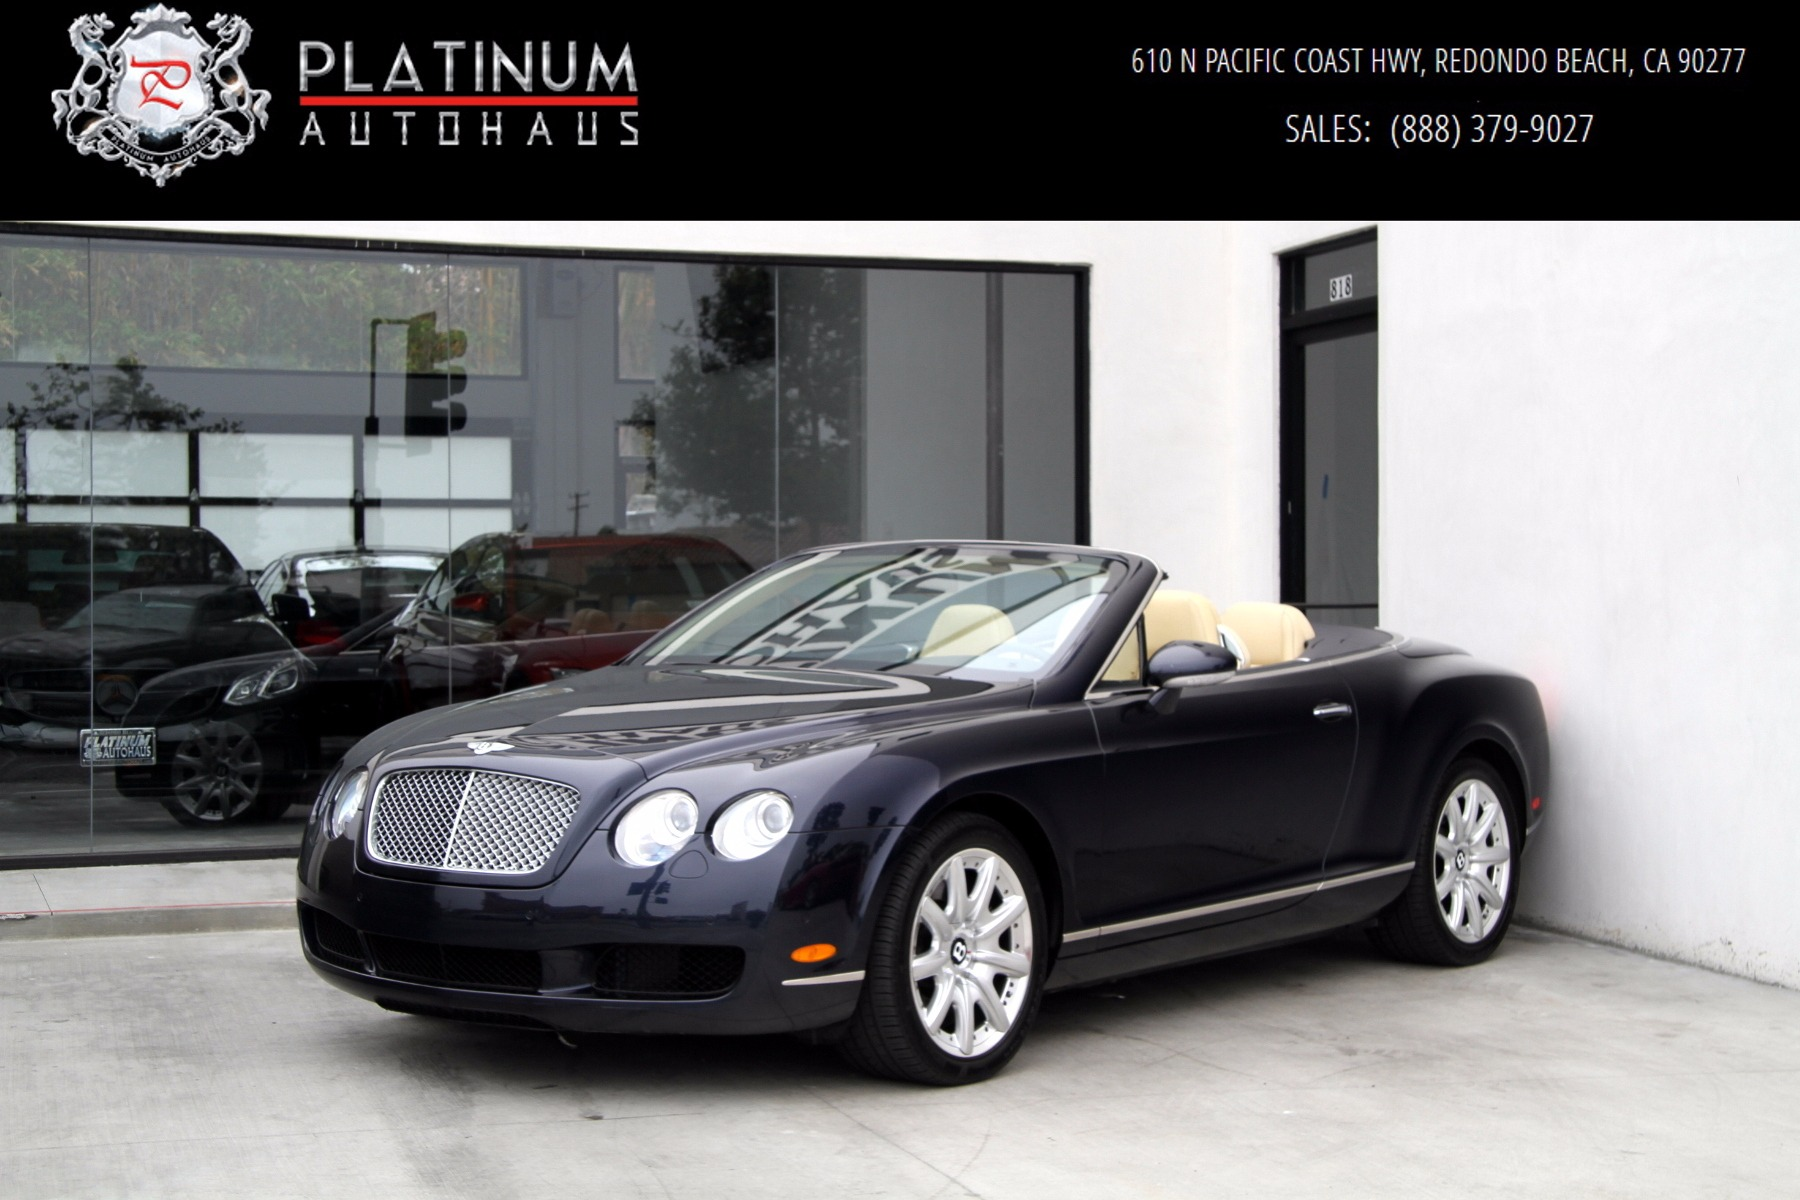 2007 bentley continental gtc 1 owner stock 5870 for sale near redondo beach ca ca. Black Bedroom Furniture Sets. Home Design Ideas